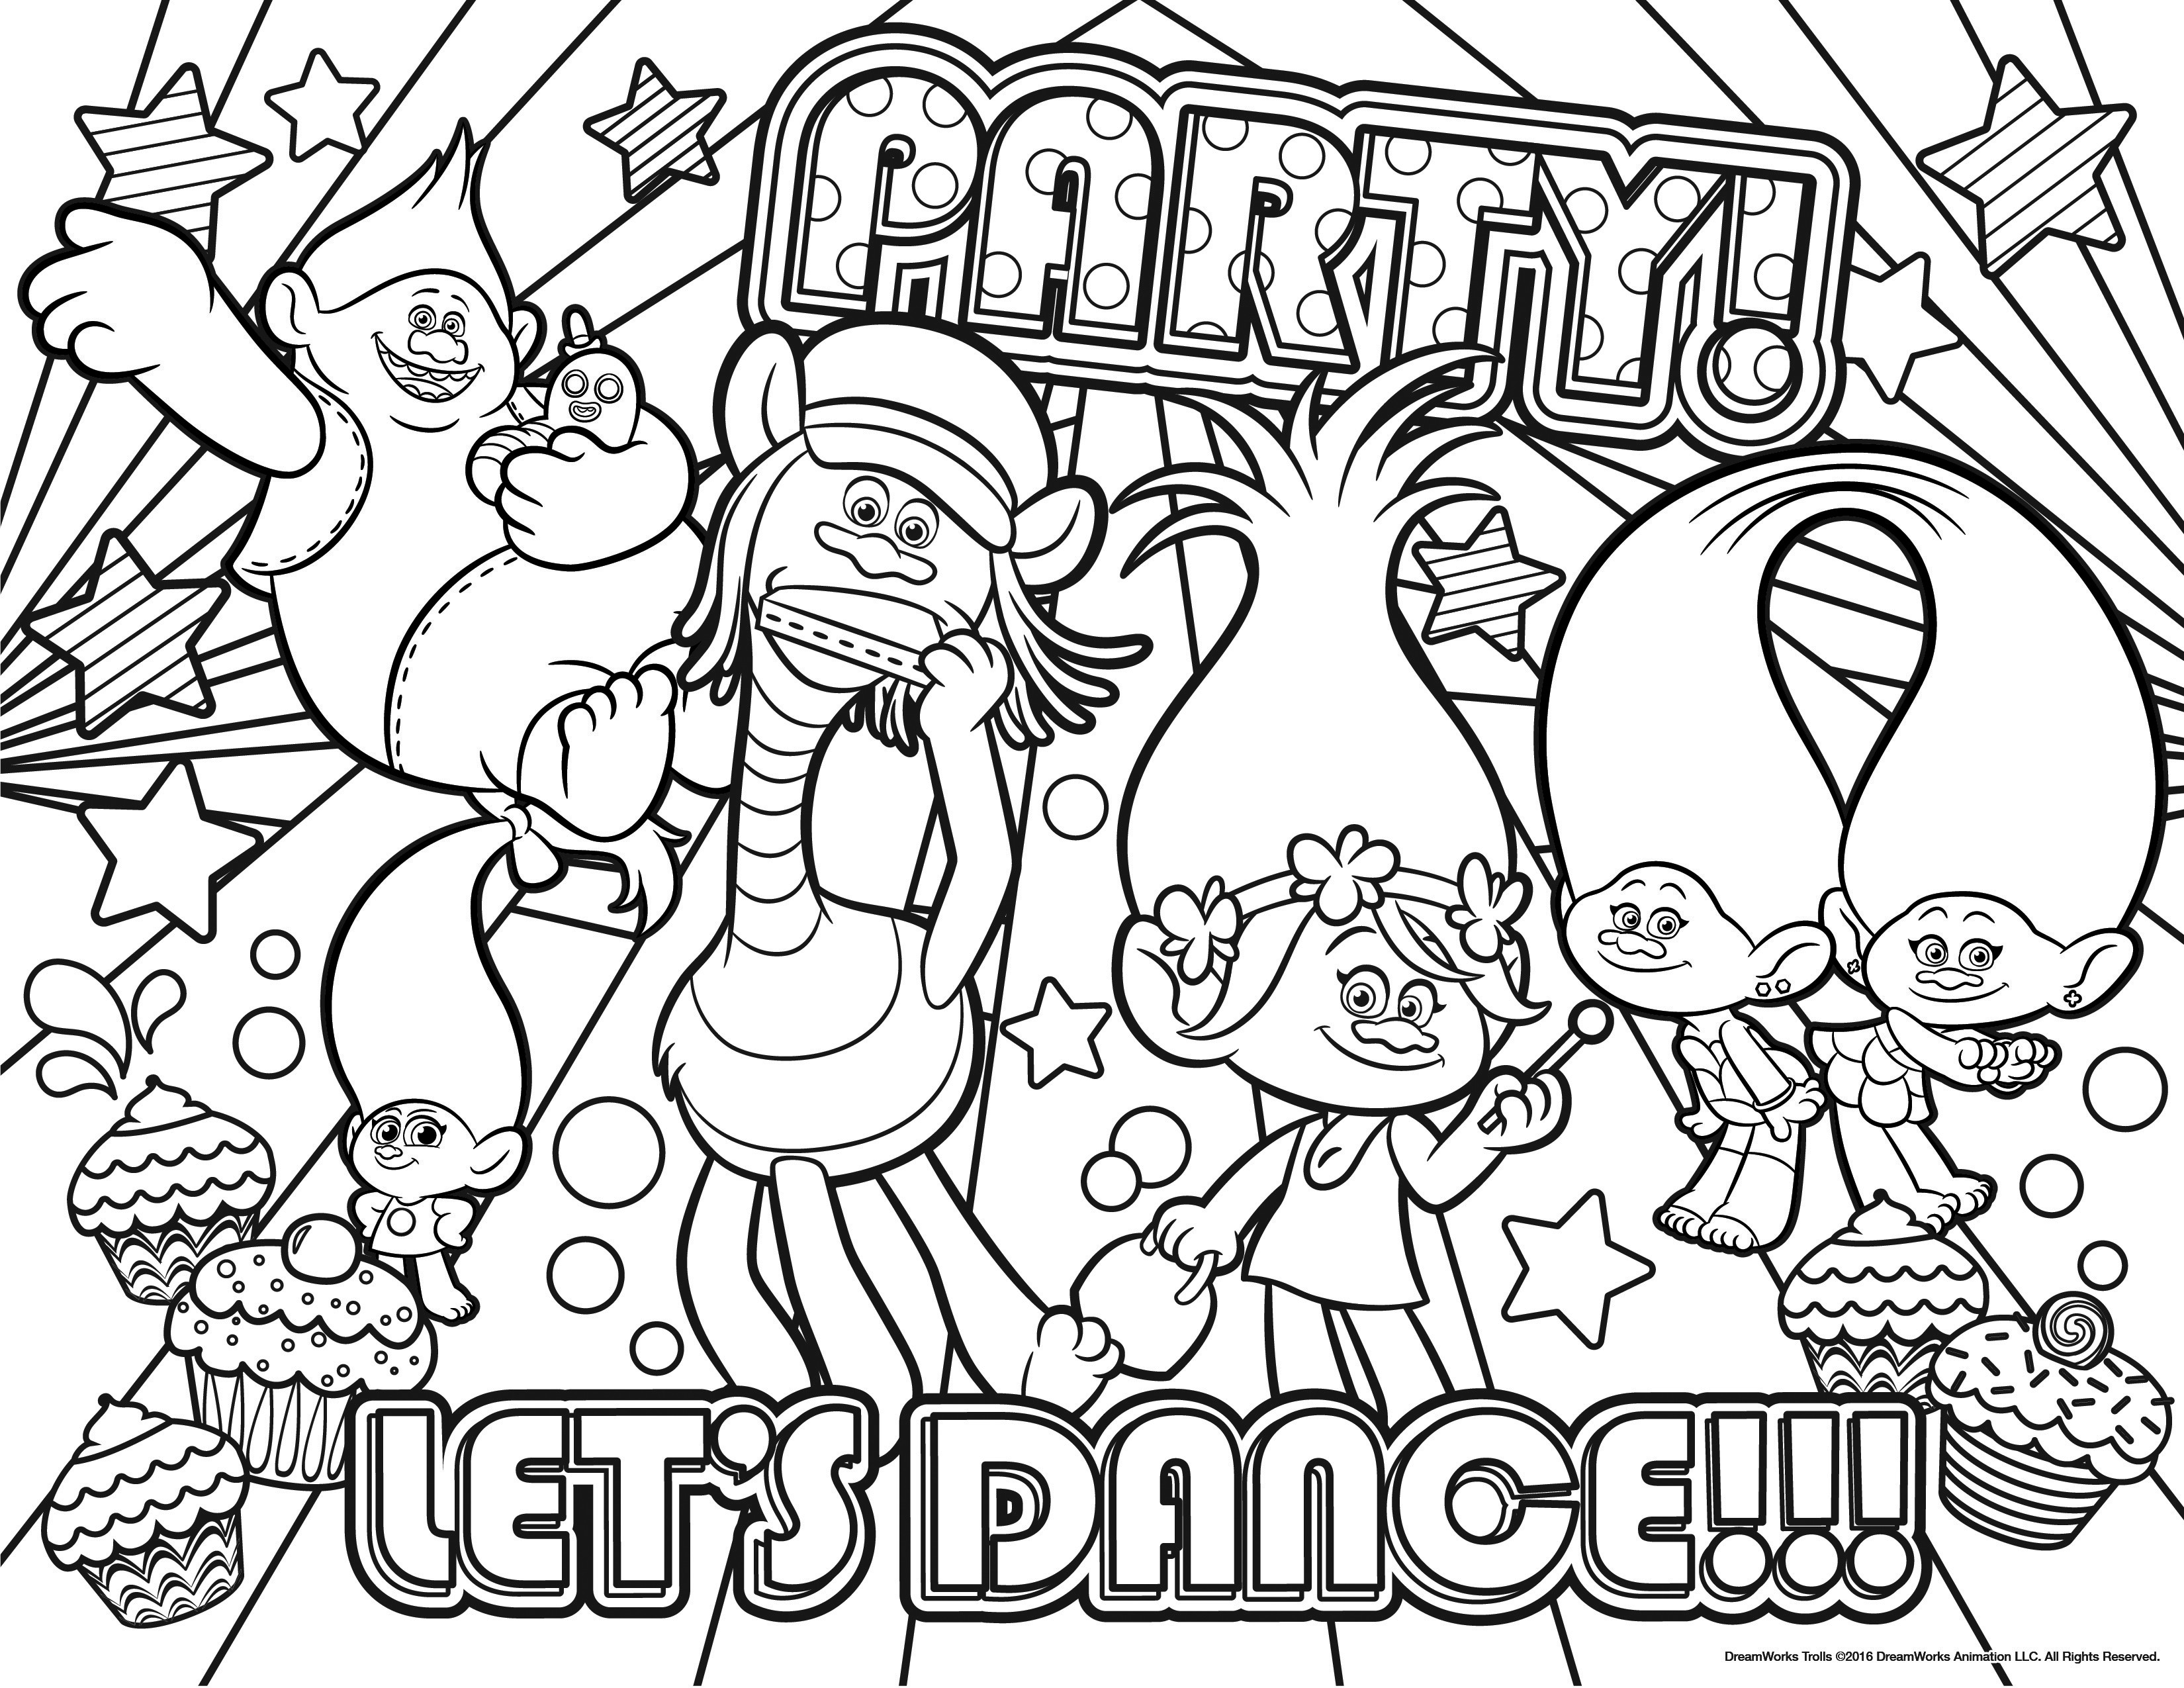 coloring images to print toy story coloring pages coloring print images to